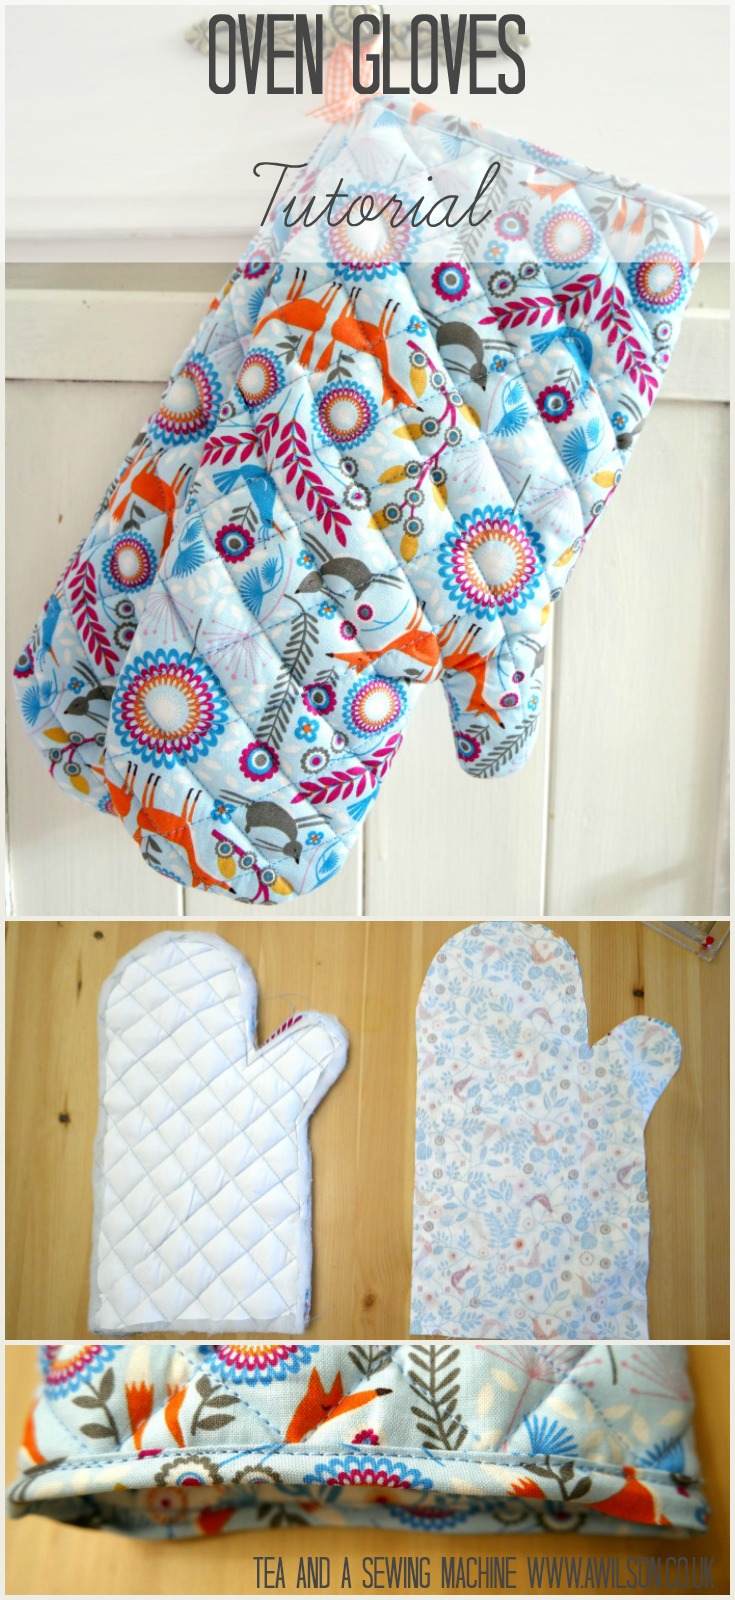 how to make oven gloves tutorial